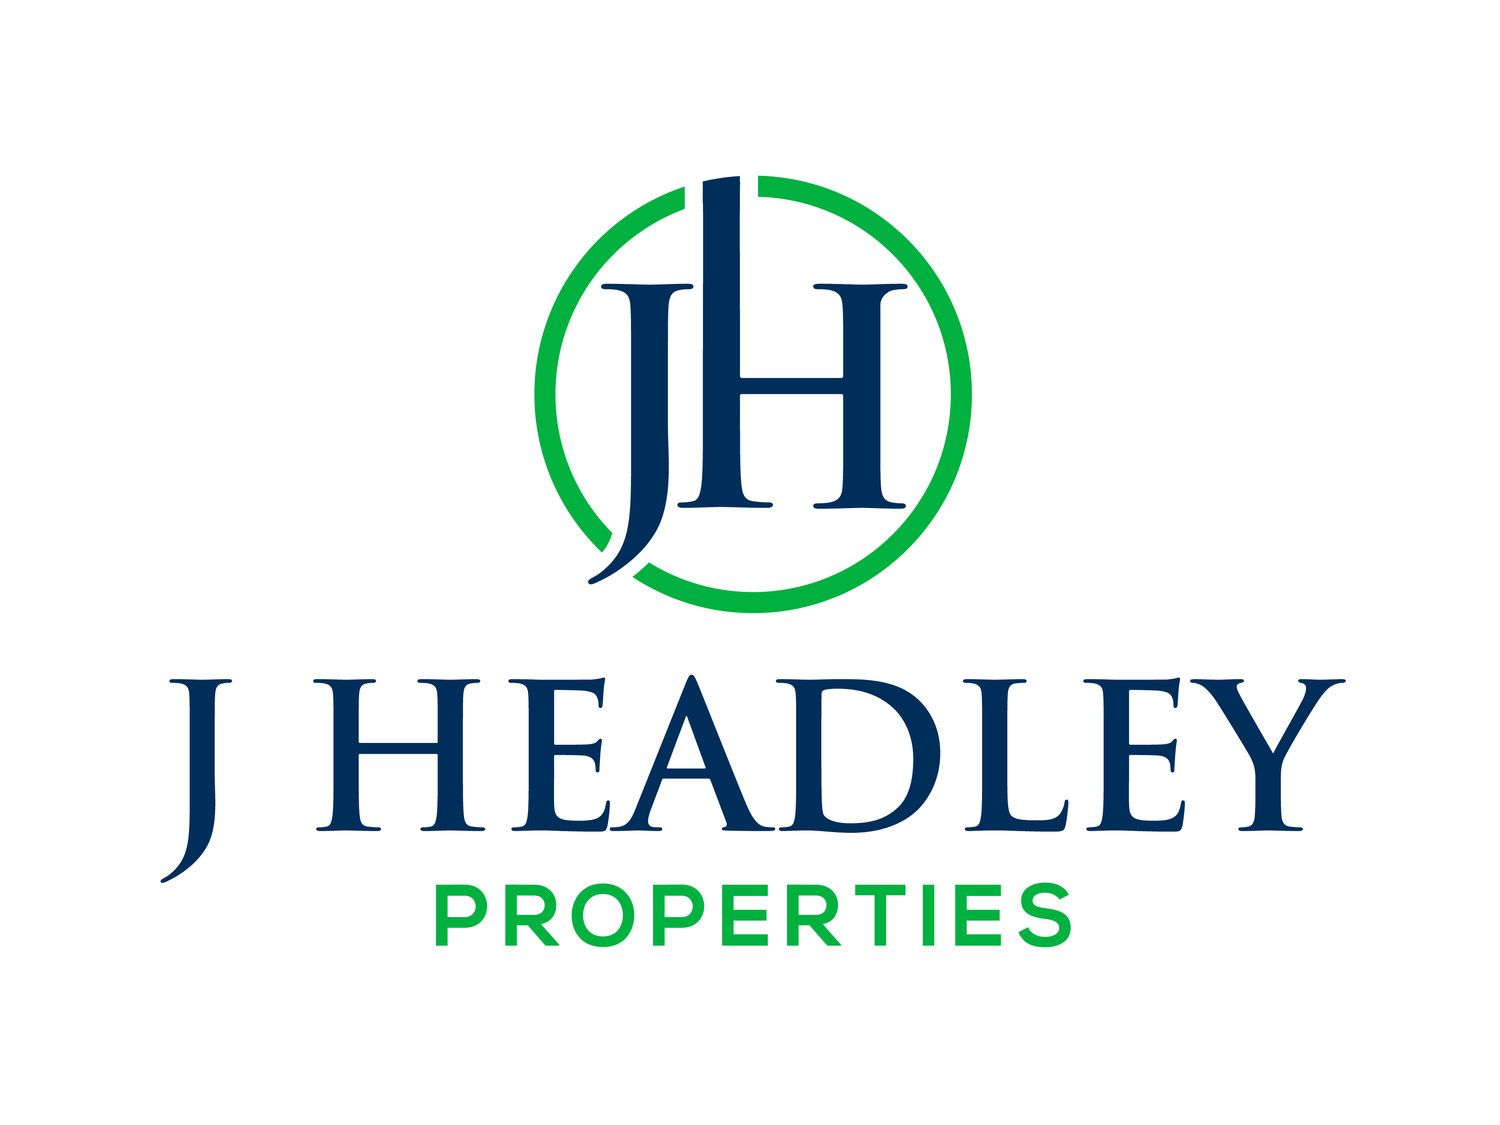 J Headley Properties